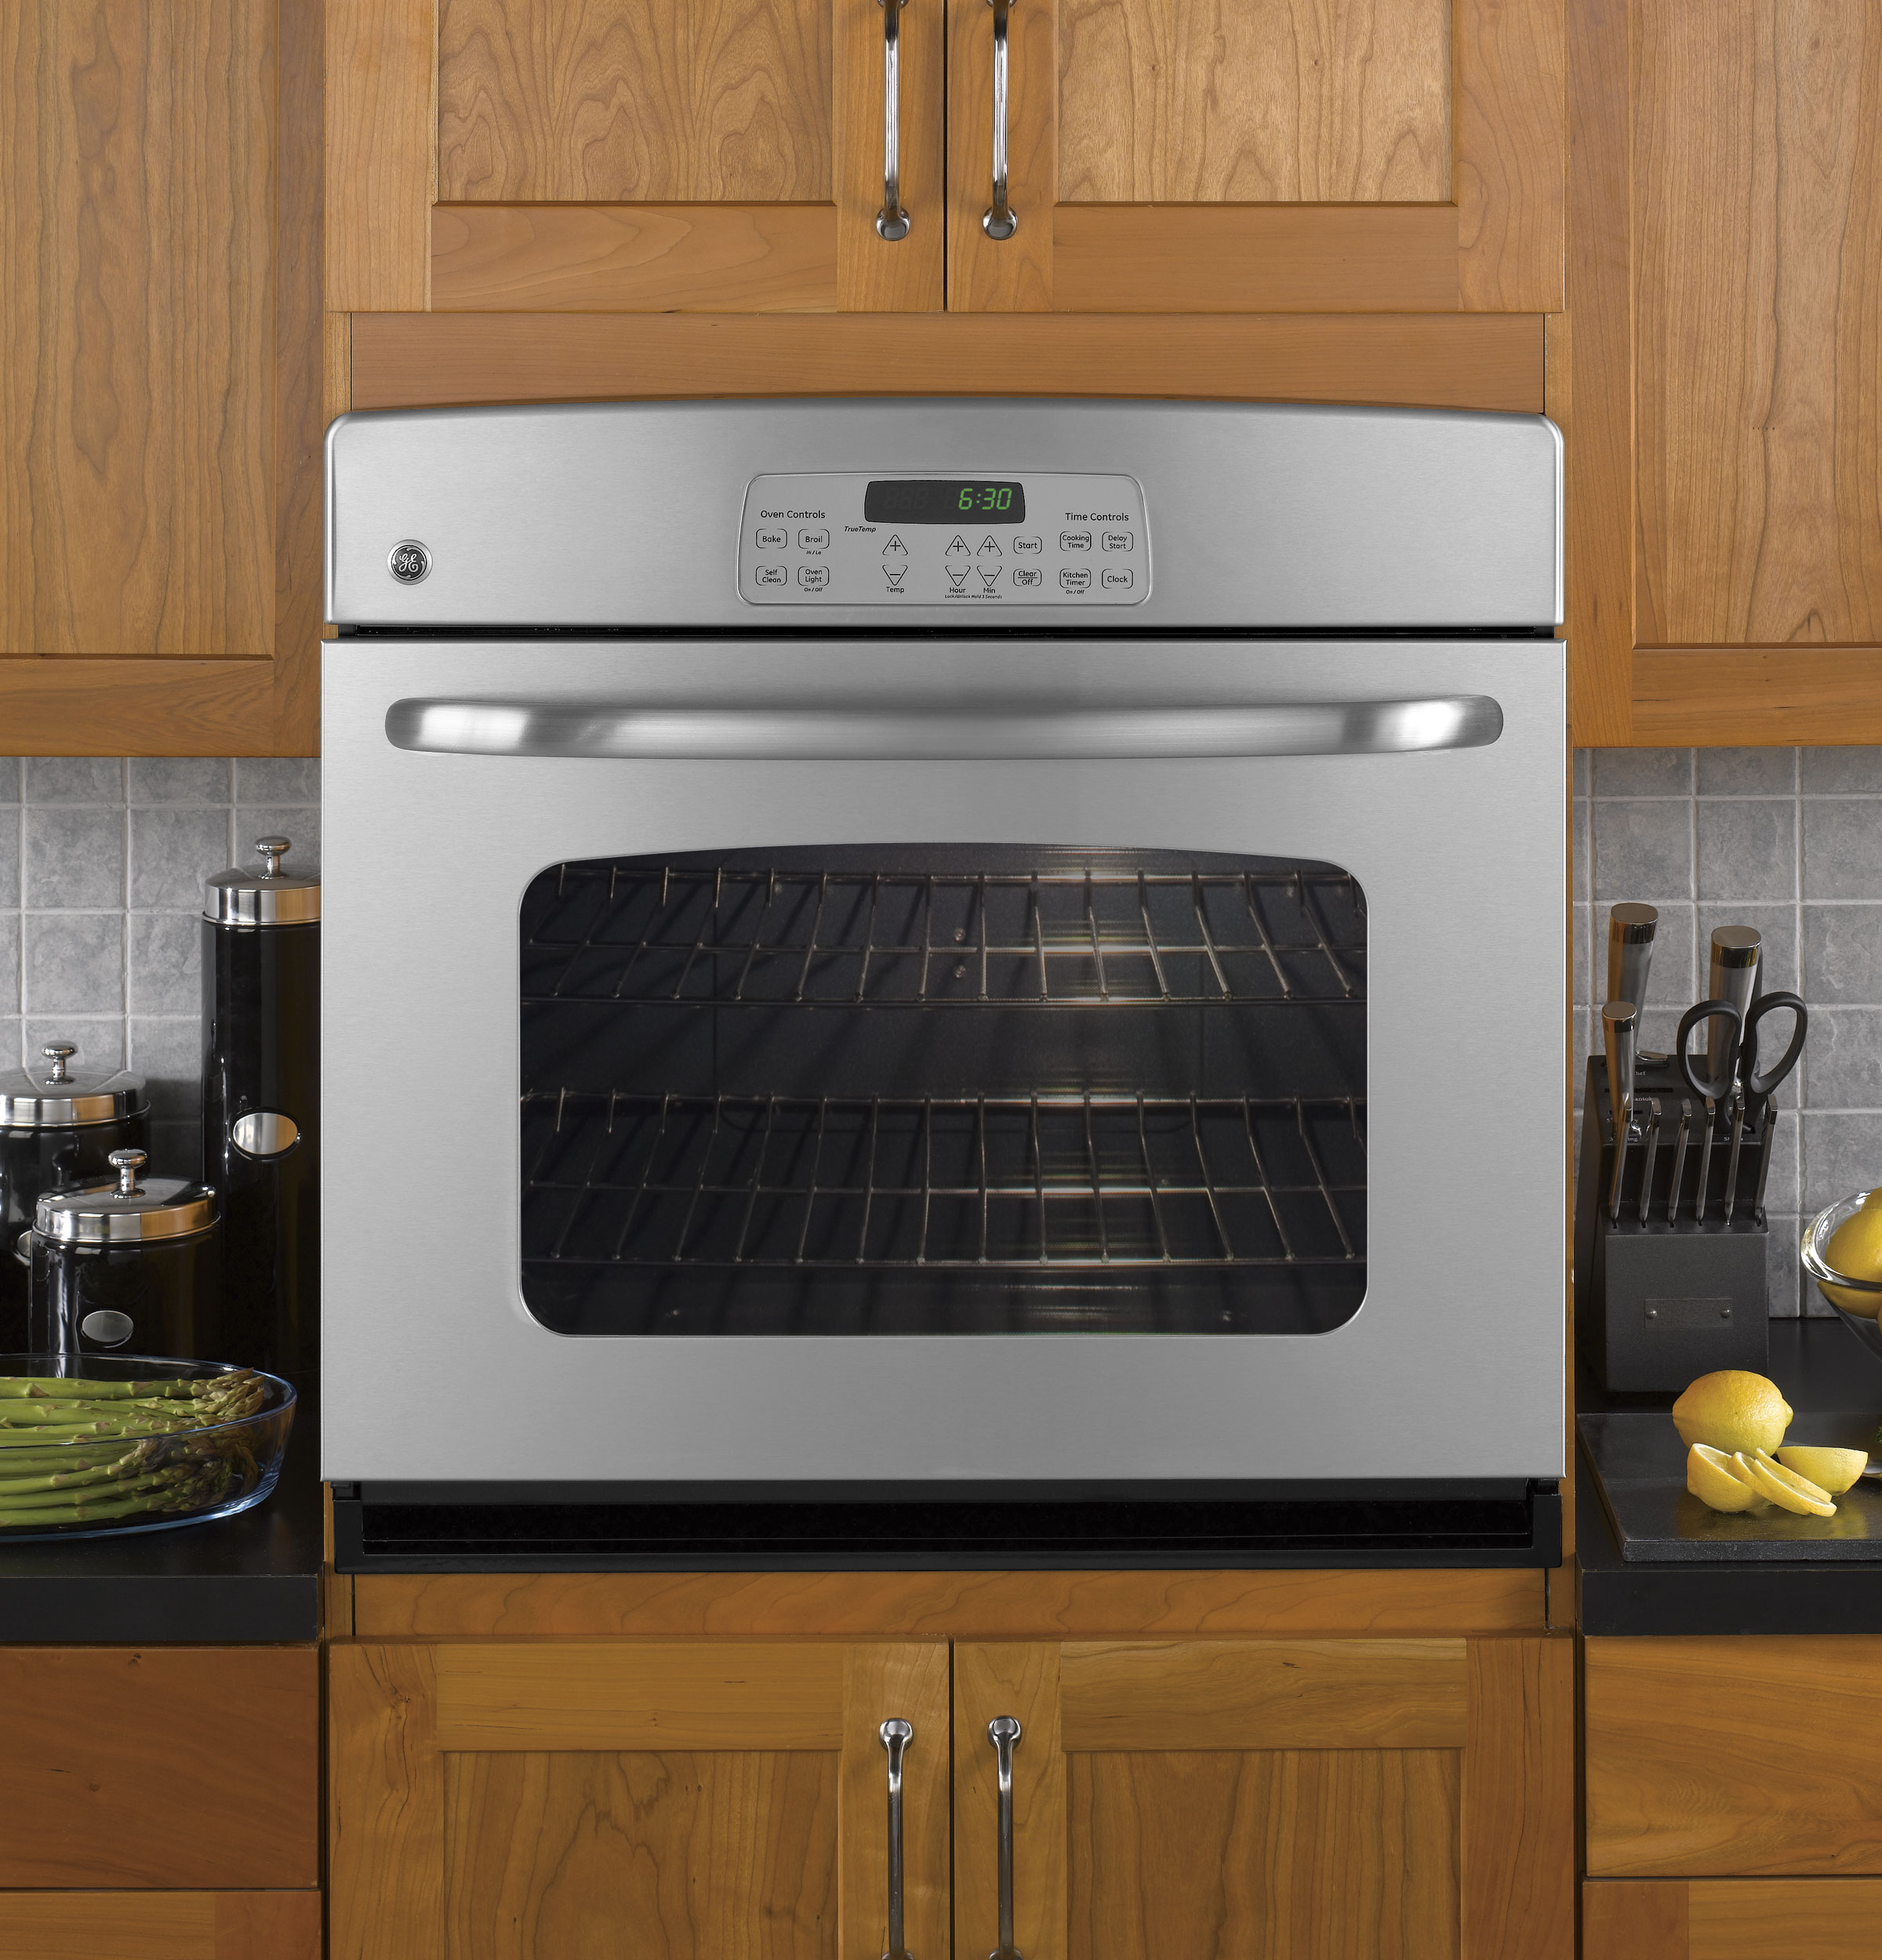 Ge 30 Built In Single Wall Oven Jtp30spss Appliances Want To Install A New 40 Amp Have 50 Circuit Product Image